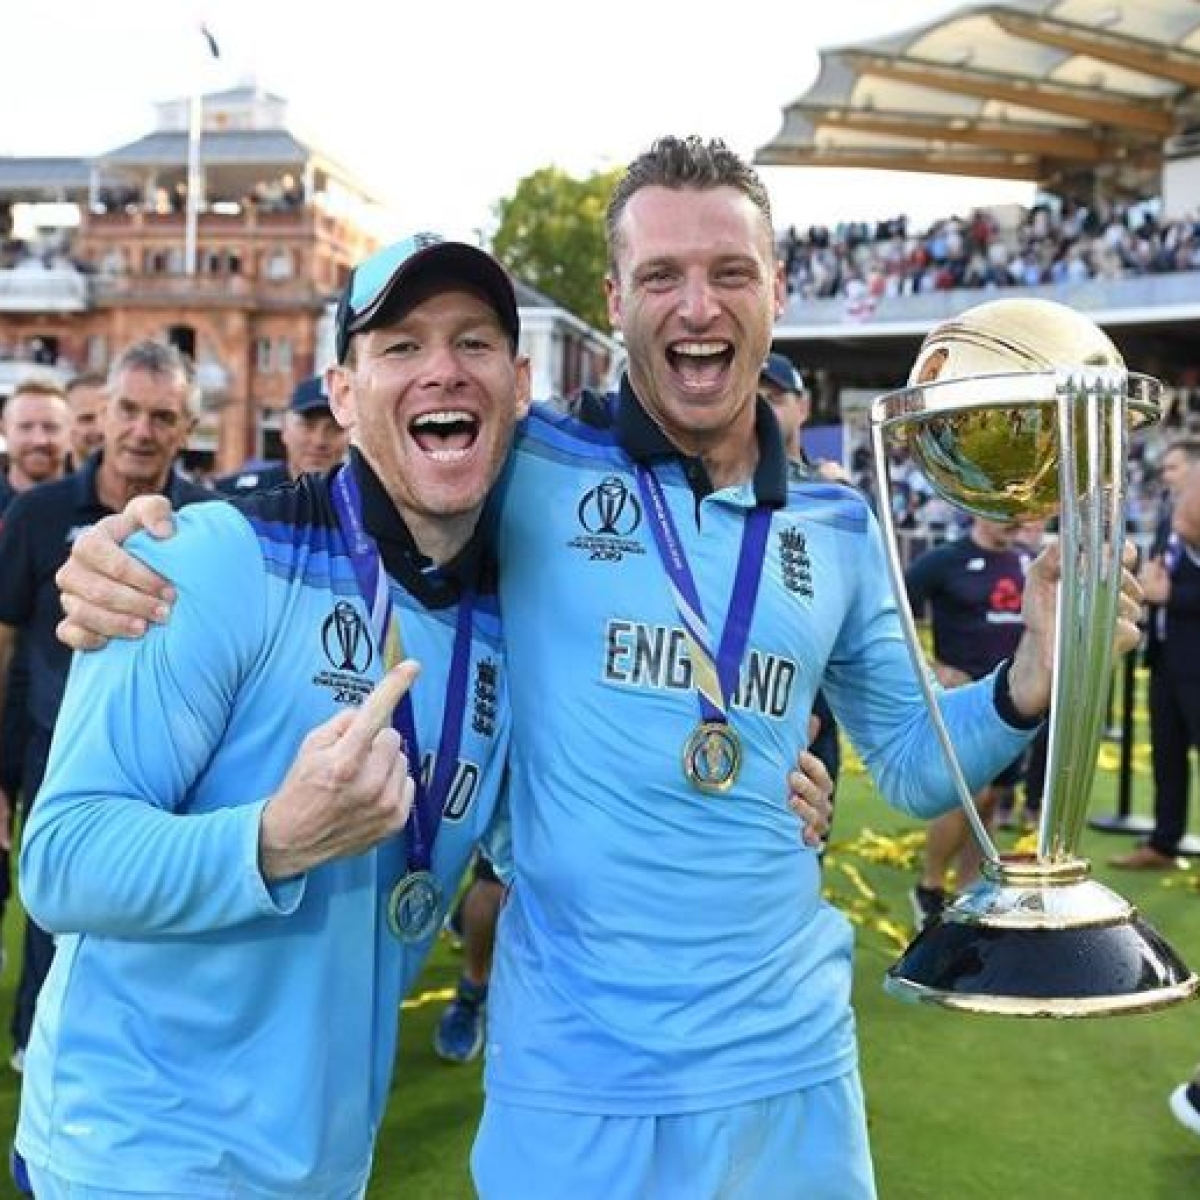 'Sir you play very good opening batting': Brendon McCullum, Eoin Morgan, and Jos Buttler's old tweets mocking Indian fans goes viral